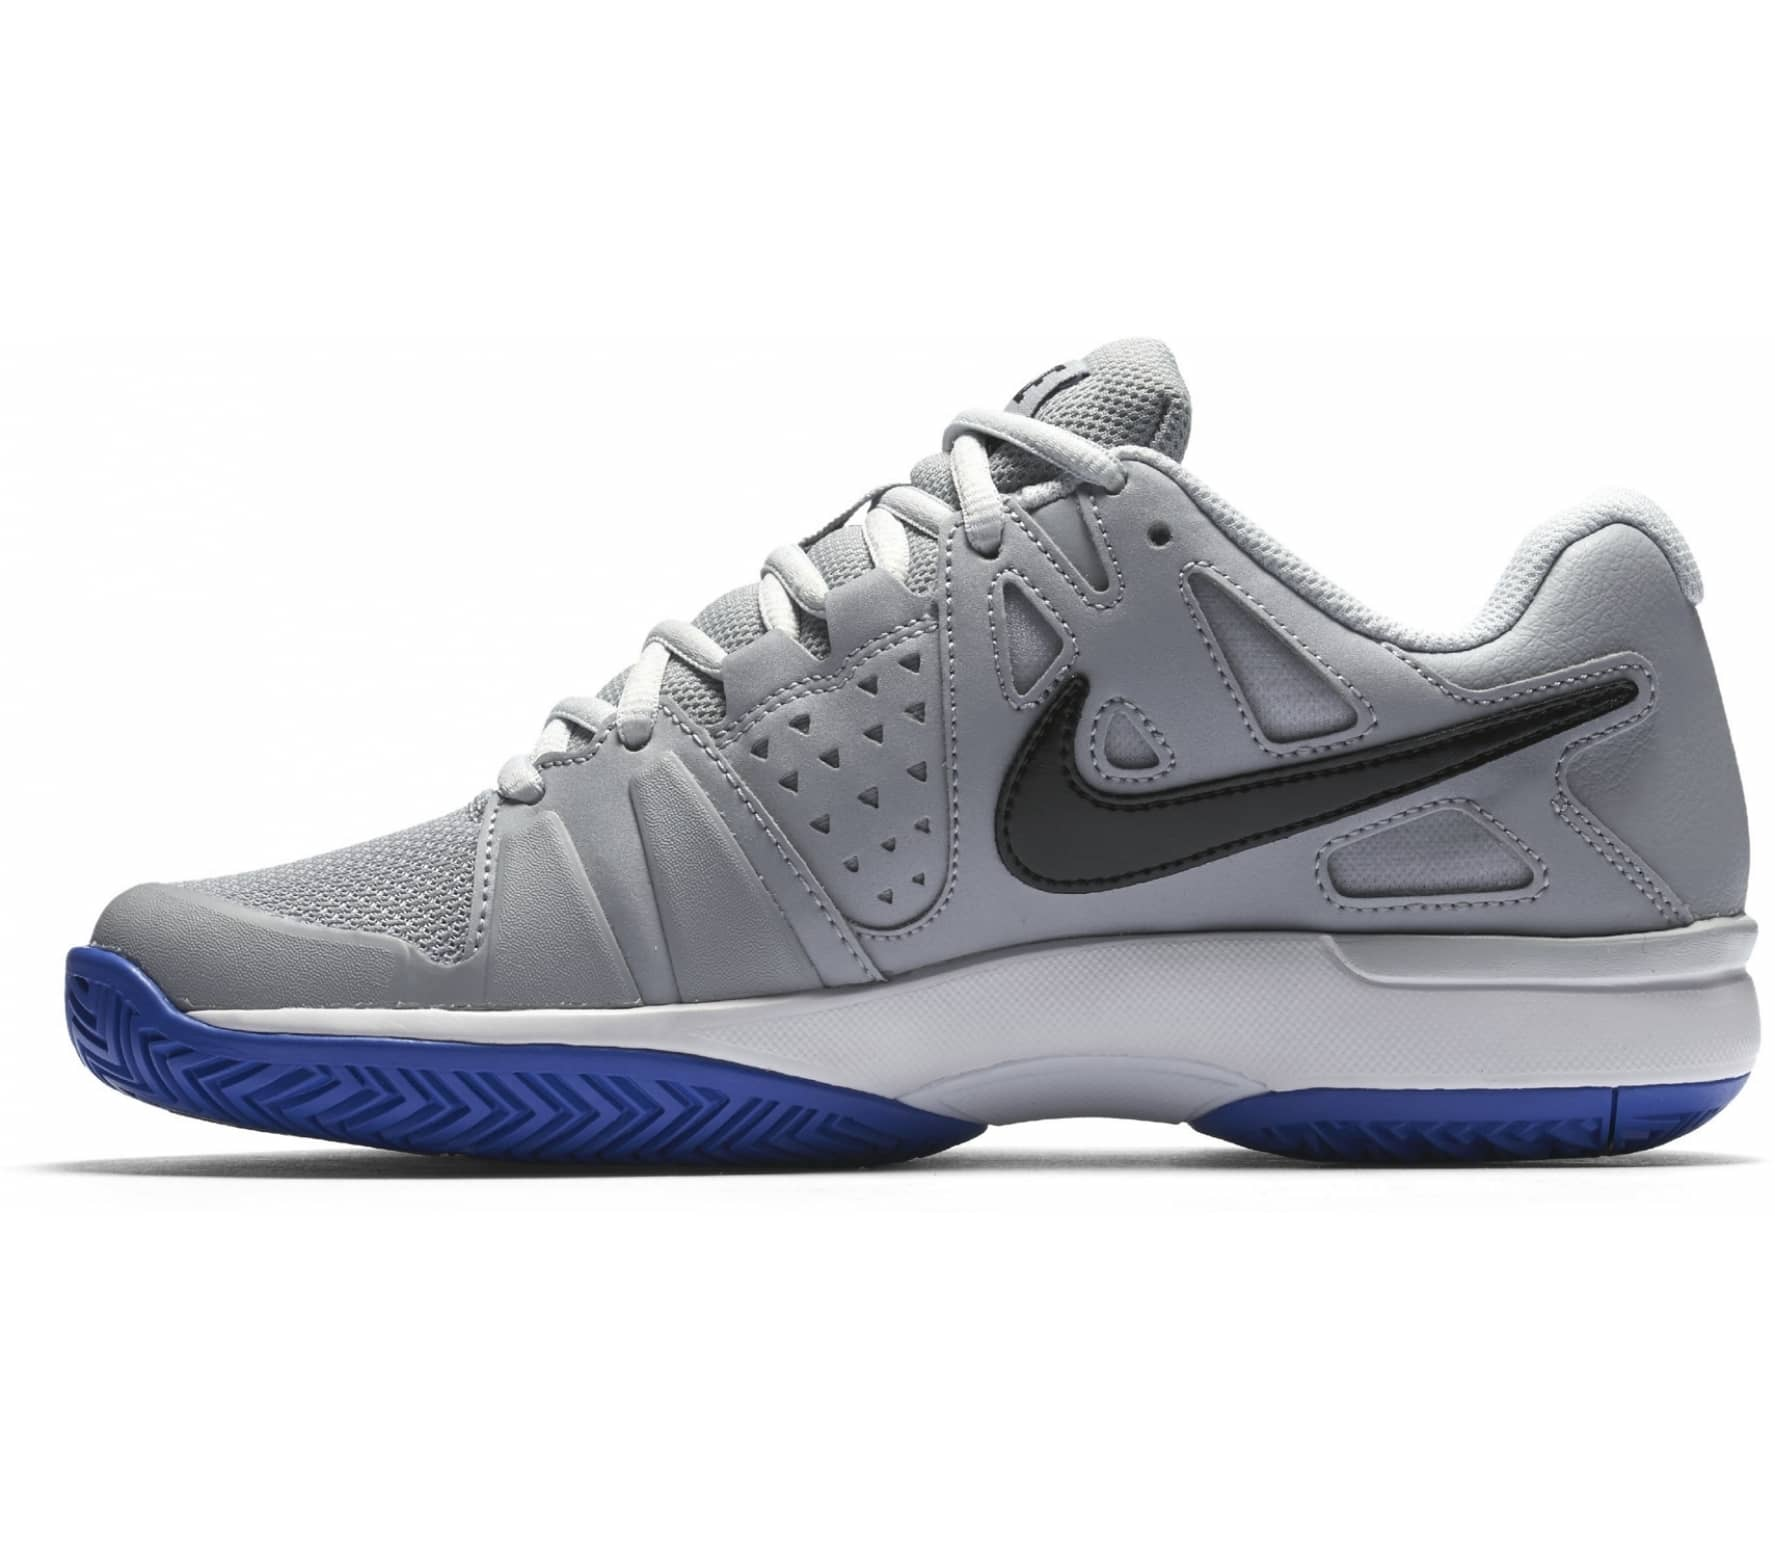 Nike Air Vapor Advantage Damen Wei 223 Im Online Shop Von